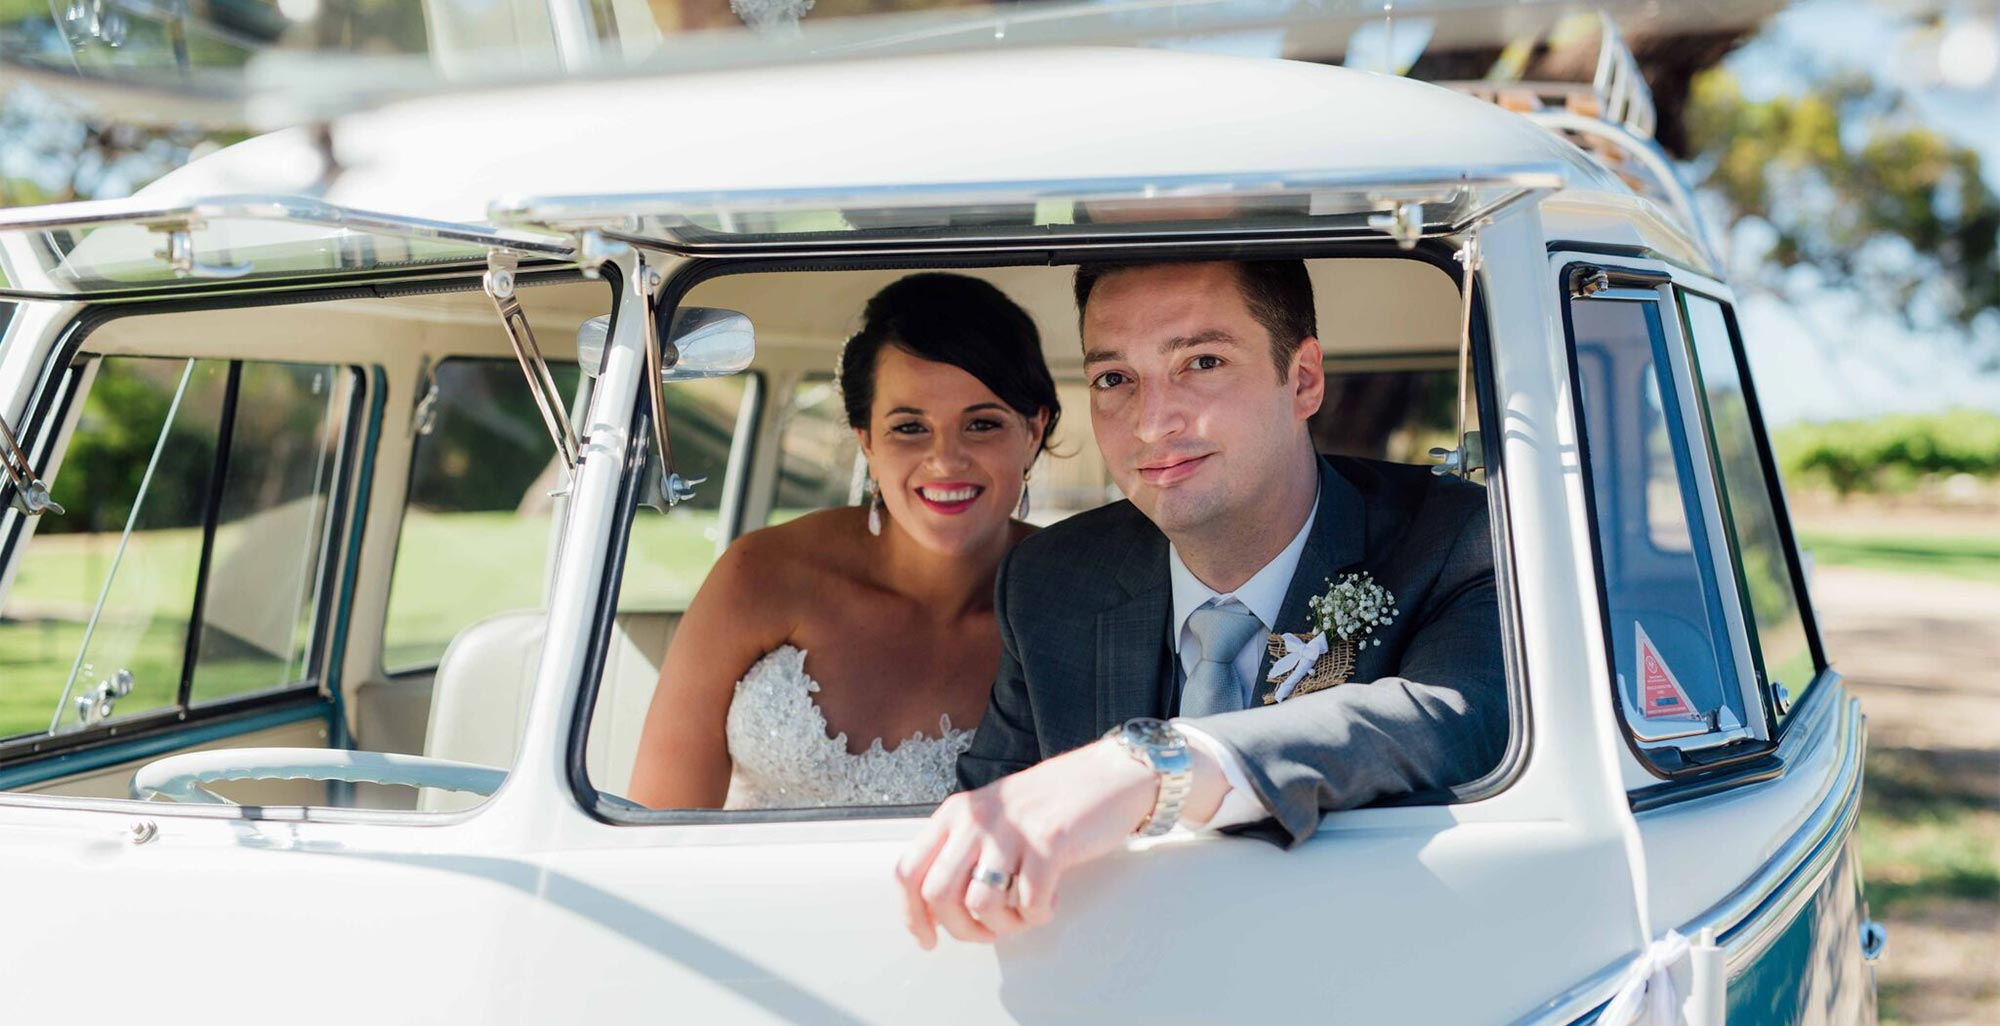 Bride & Groom on their Wedding Day in restored, vintage Volkswagen VW Kombi Van with Kombi Cruise, Adelaide's Wedding & Events Car Hire Company